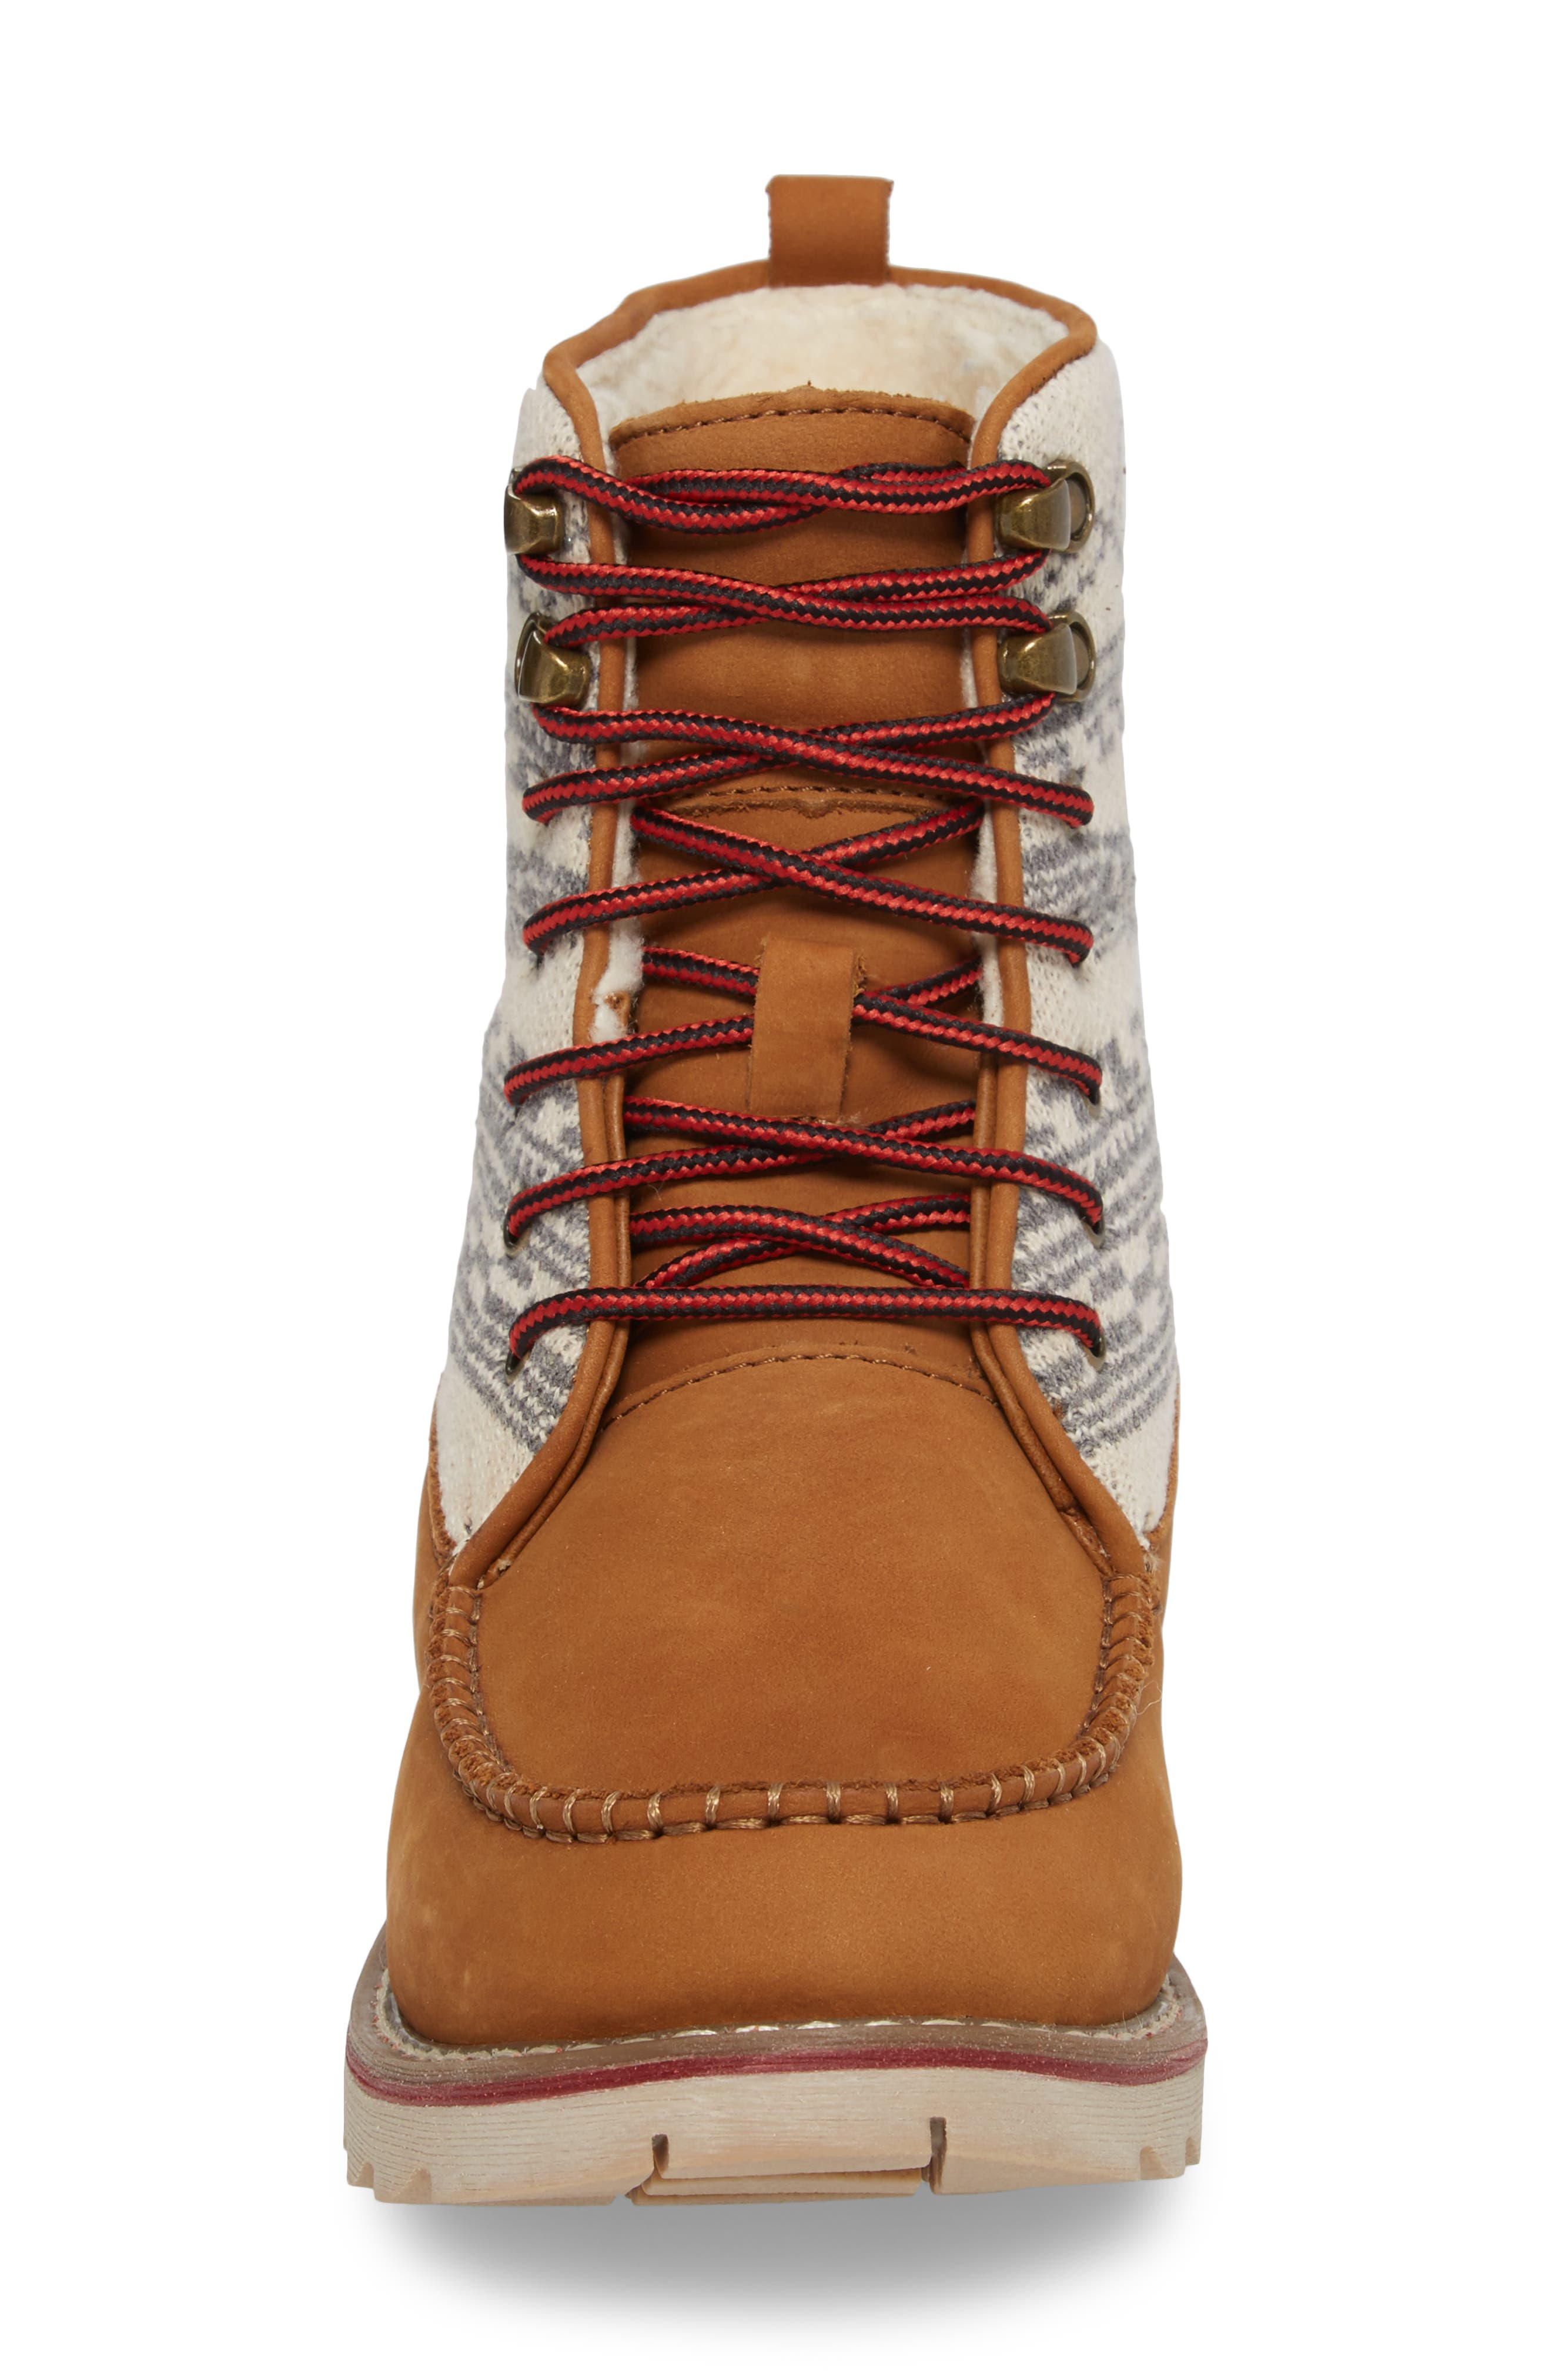 Patterned Waterproof Snow Boot,                             Alternate thumbnail 4, color,                             Tan Leather